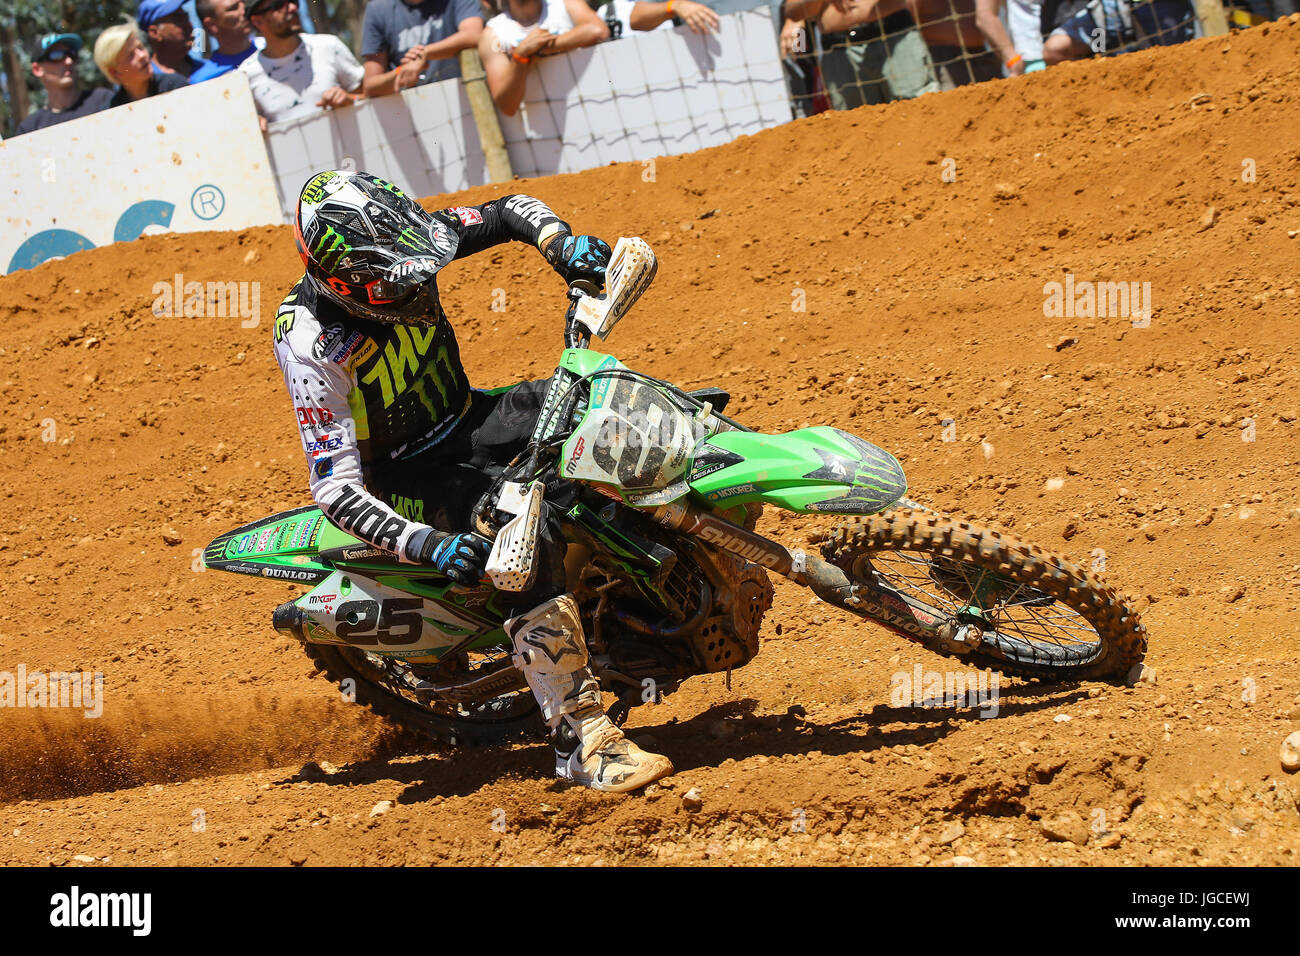 Clement Desalle #25 (BEL) in Kawasaki of Monster Energy Kawasaki Racing Team in action during the MXGP World Championship Stock Photo